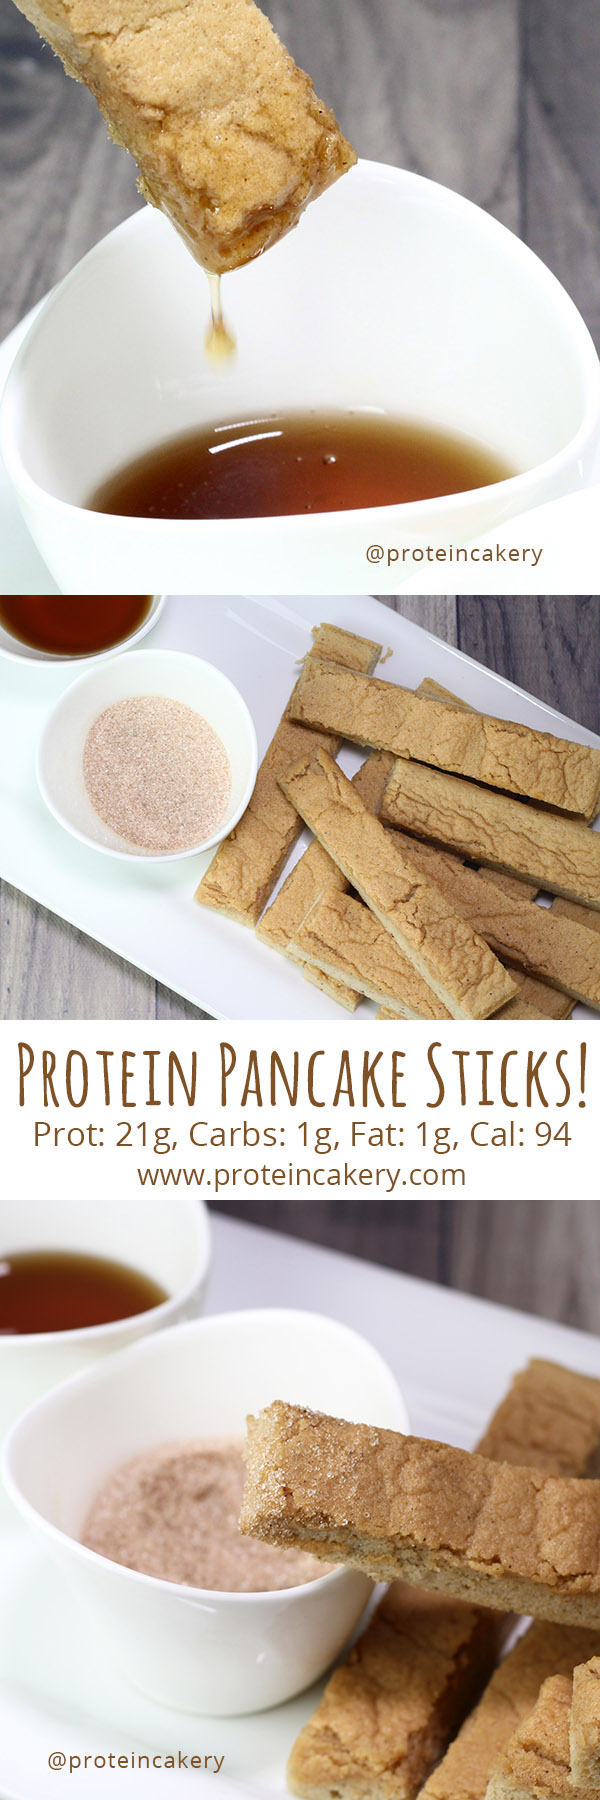 protein-pancake-sticks-protein-cakery-glutenfree-pinterest